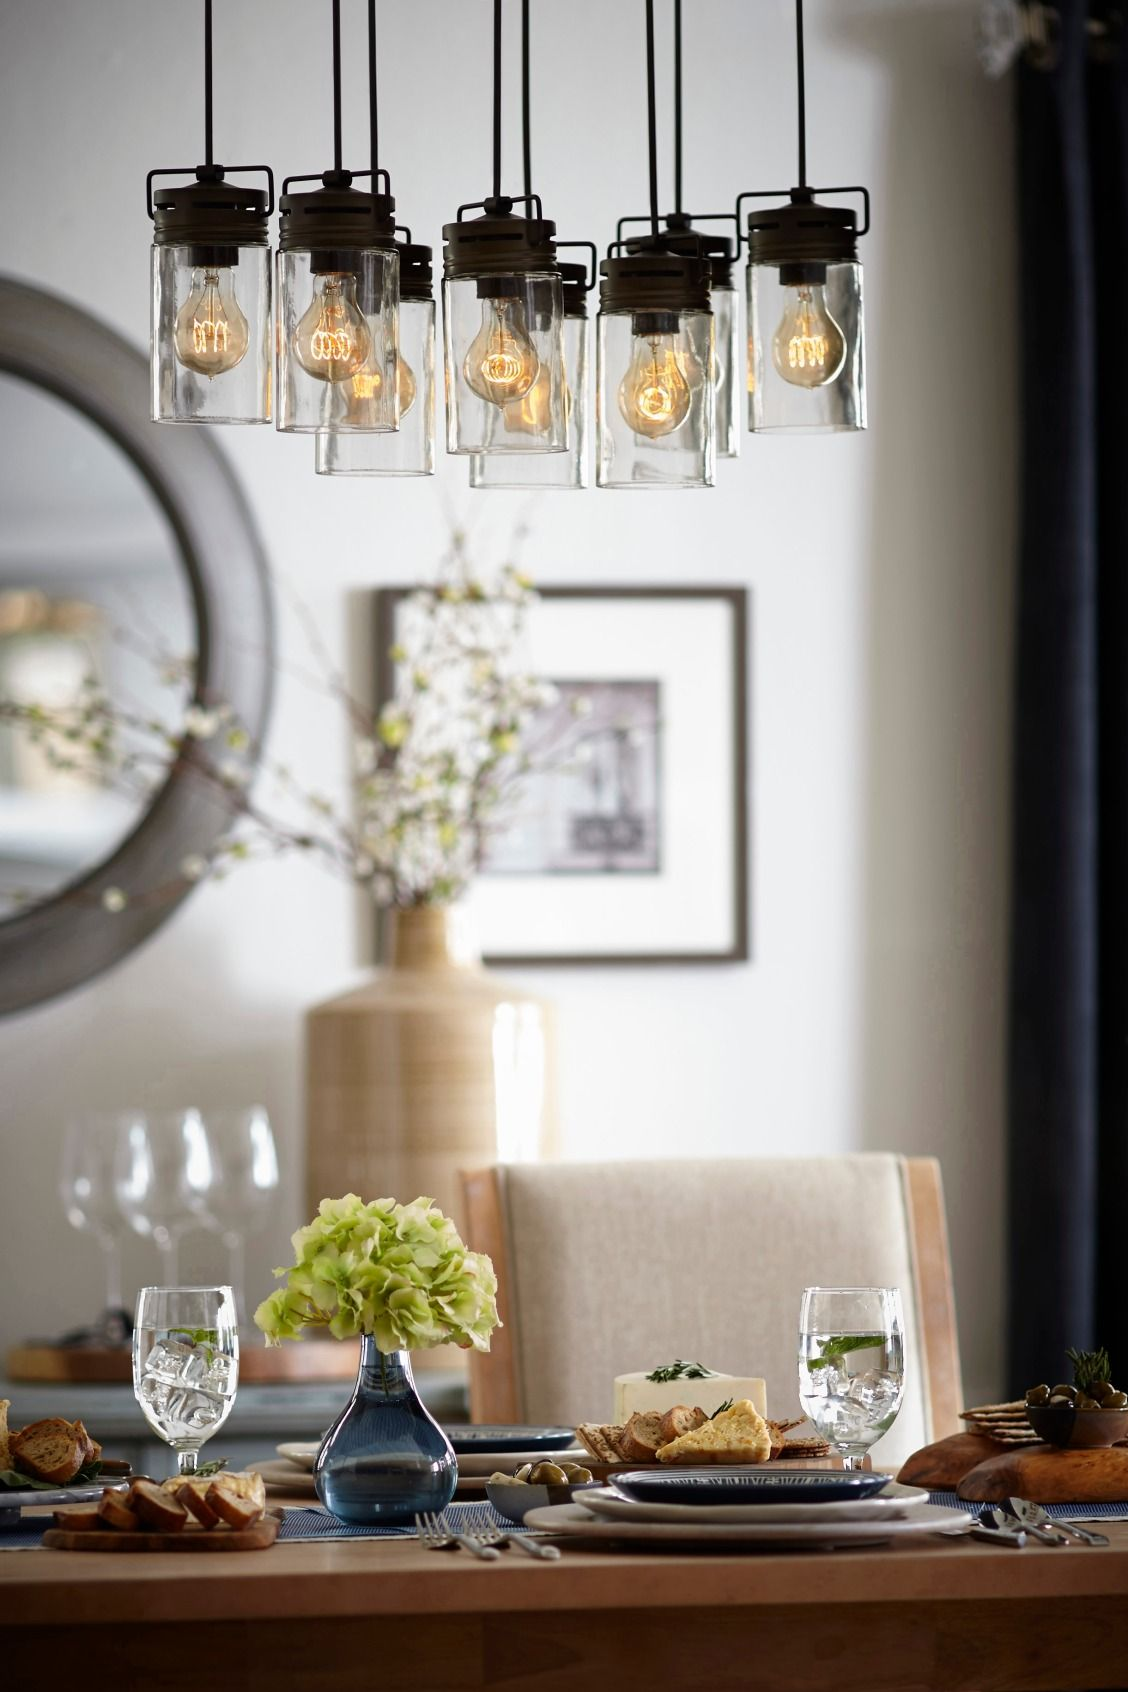 Ideal for an urban loft or farmhouse an industrial style chandelier allen roth timeless moments rustic home dcor aloadofball Images